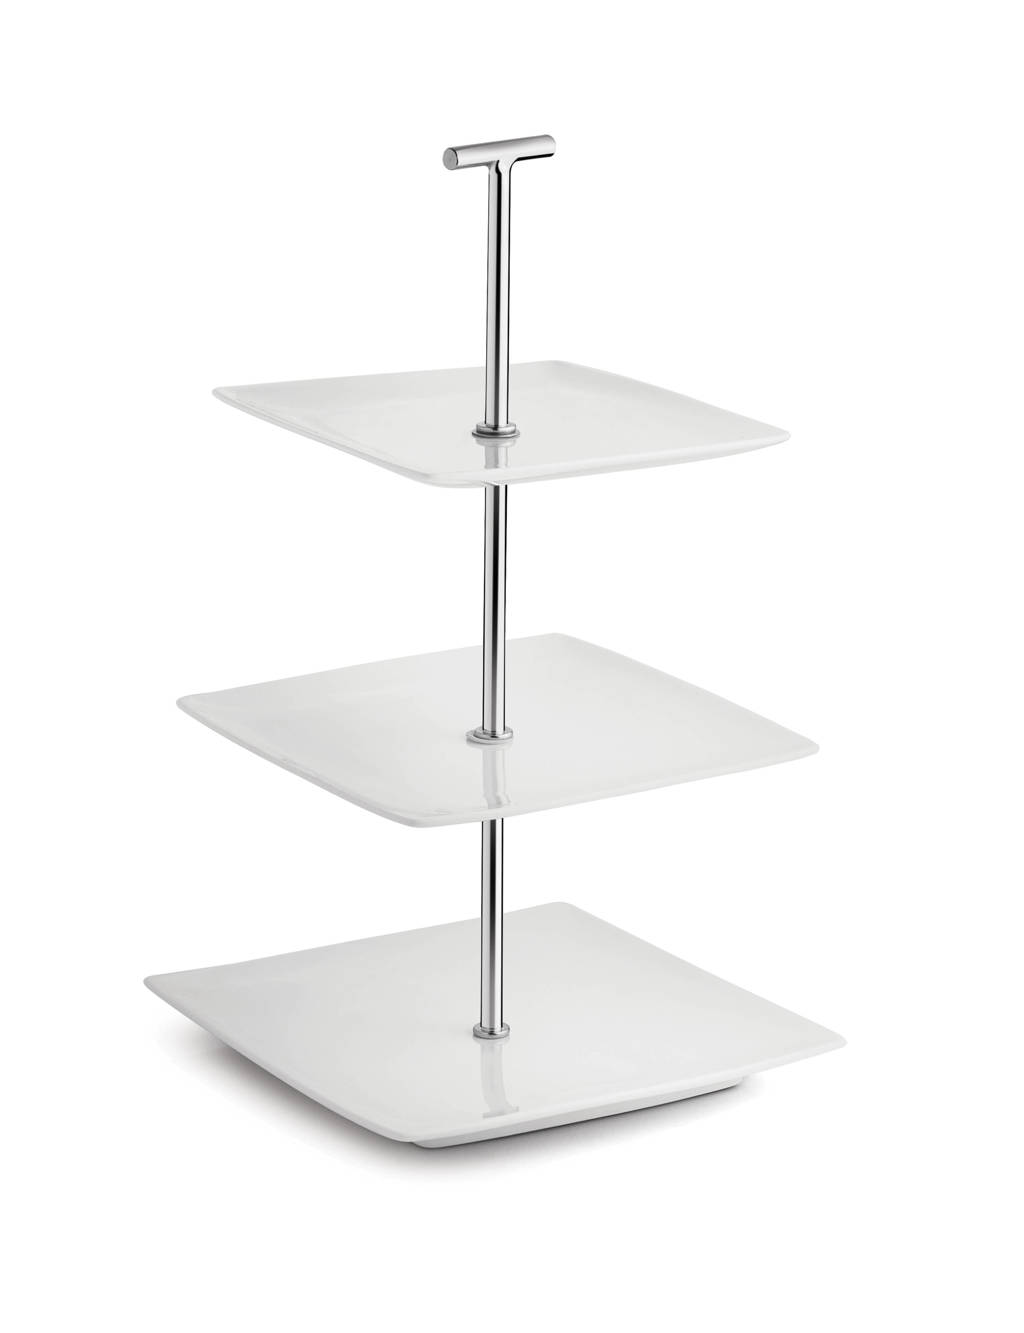 Yong etagere squito 3 laags, Wit